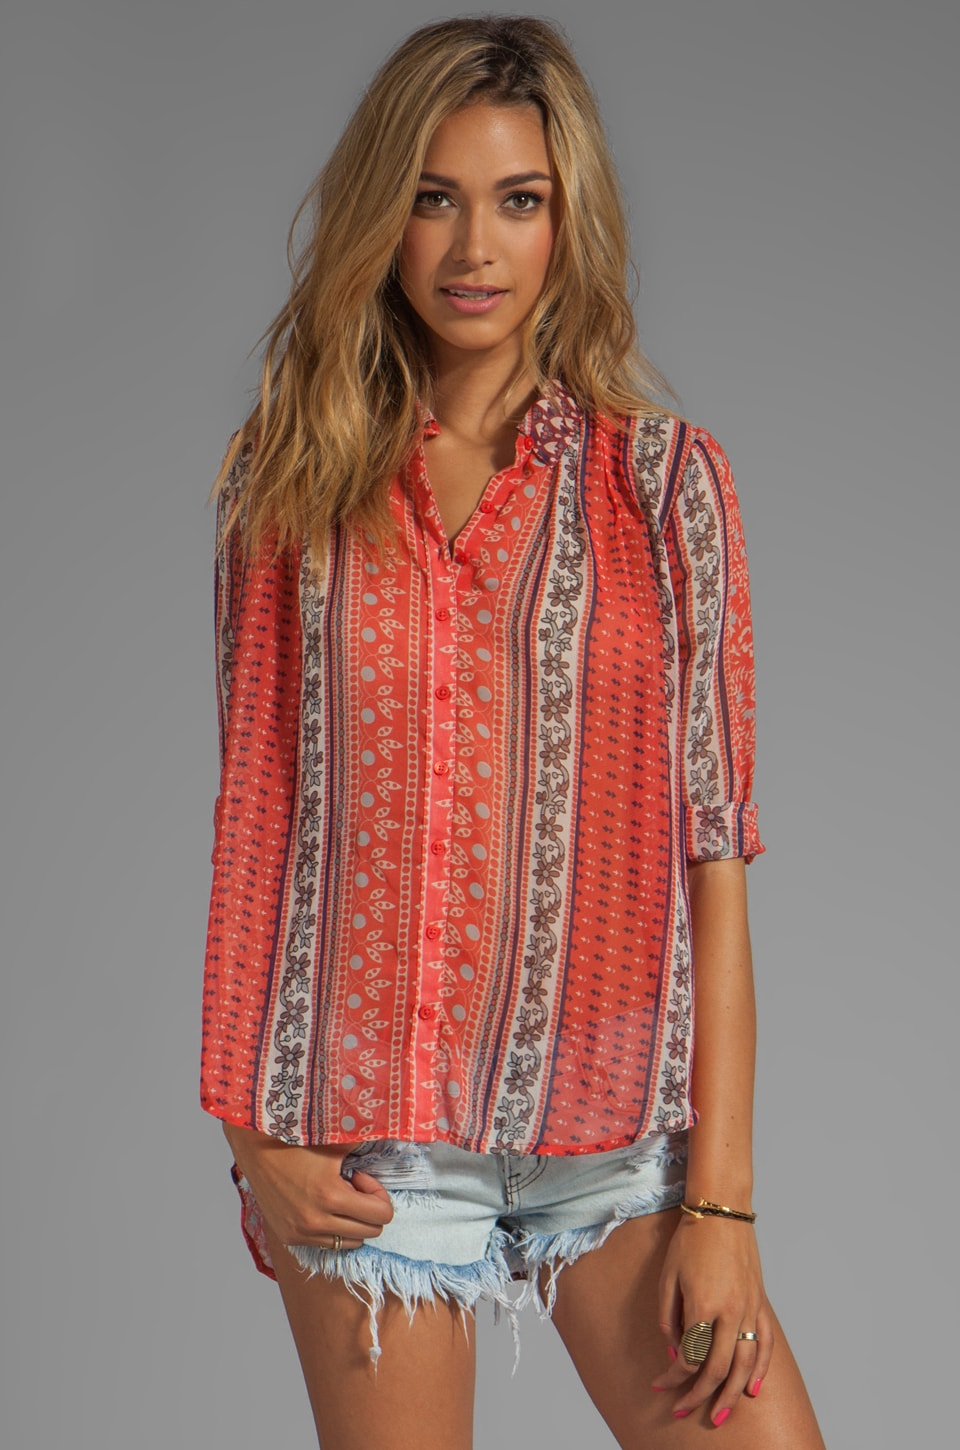 Free People Moonlight Mile Woven Top in Hot Coral Combo